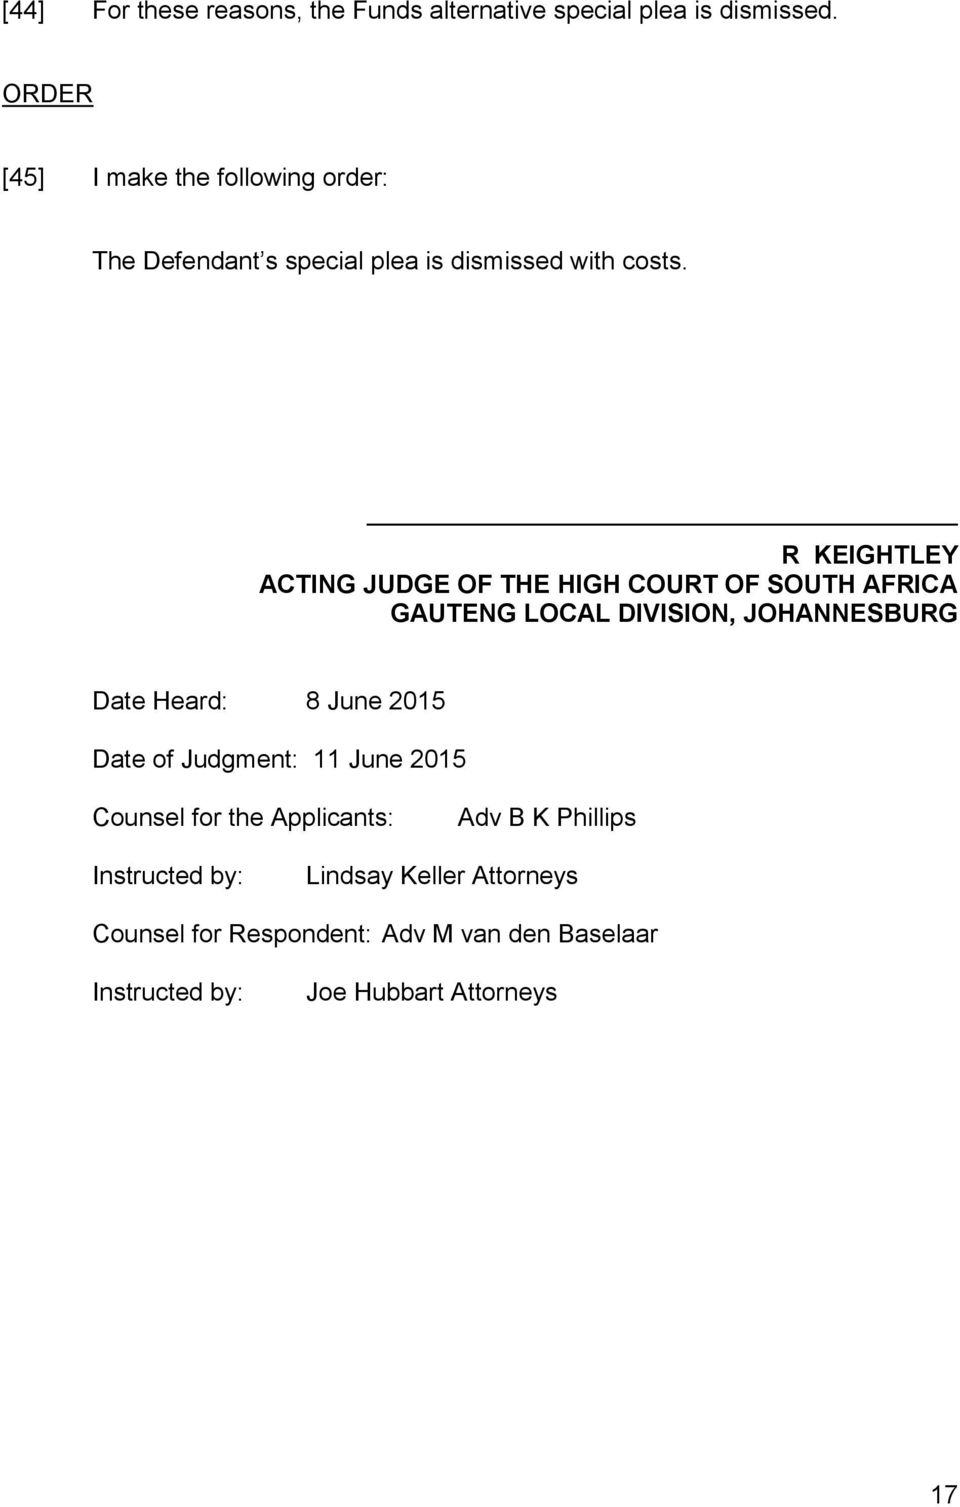 R KEIGHTLEY ACTING JUDGE OF THE HIGH COURT OF SOUTH AFRICA GAUTENG LOCAL DIVISION, JOHANNESBURG Date Heard: 8 June 2015